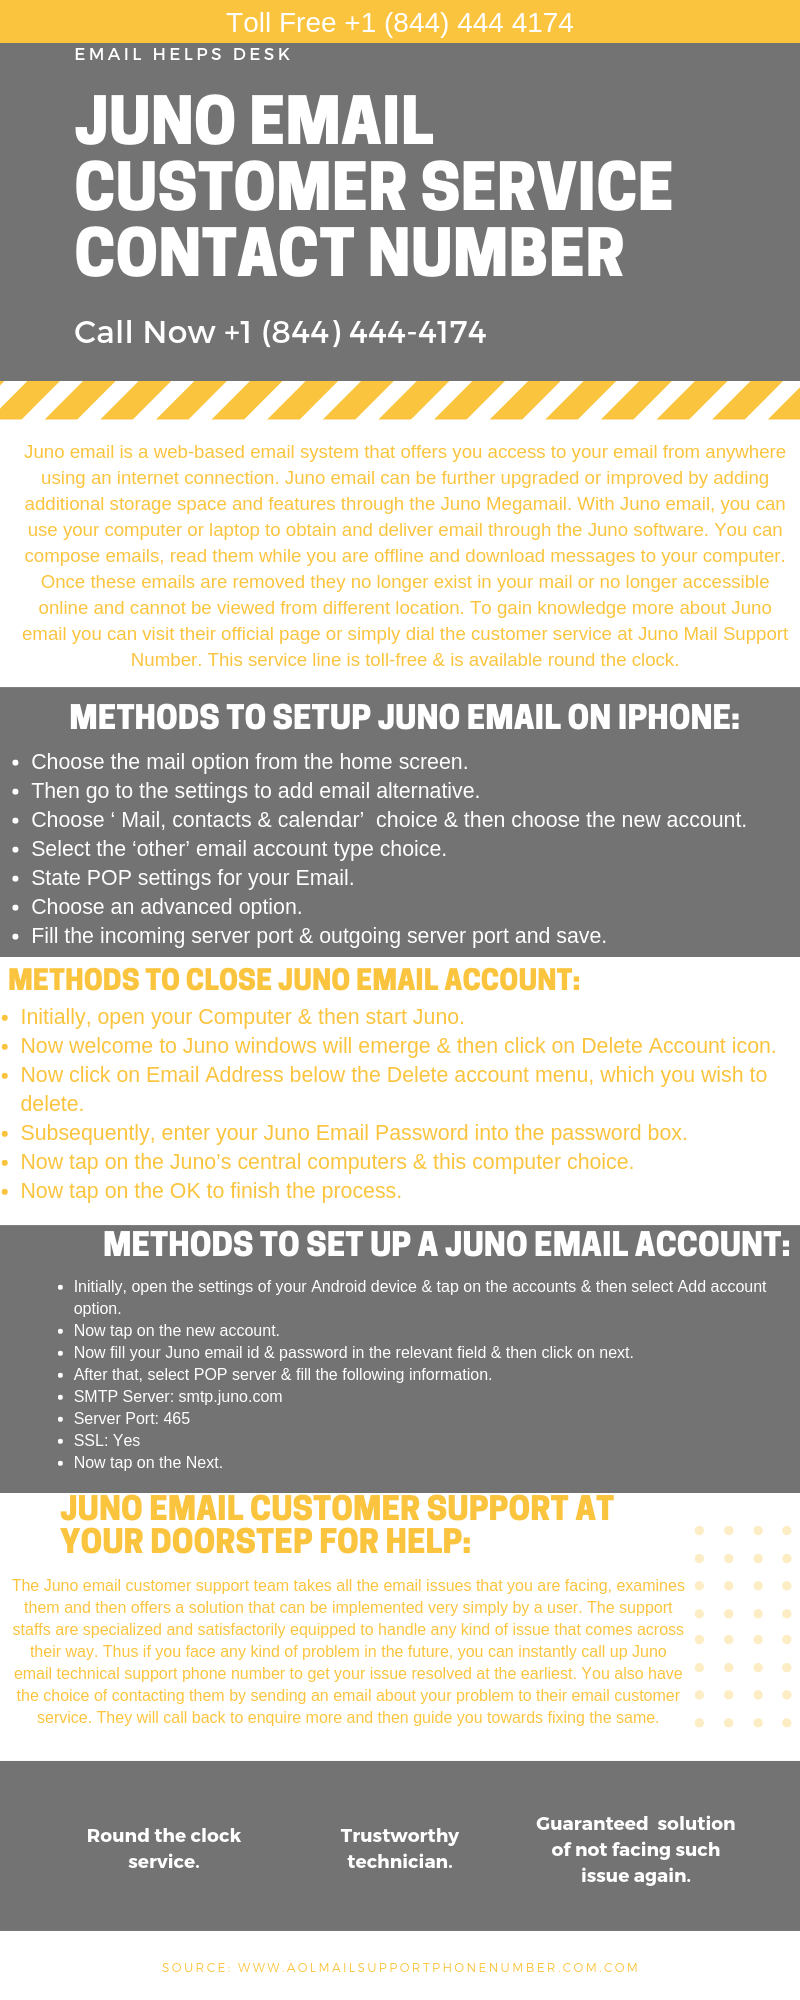 juno email customer support #juno email customer service